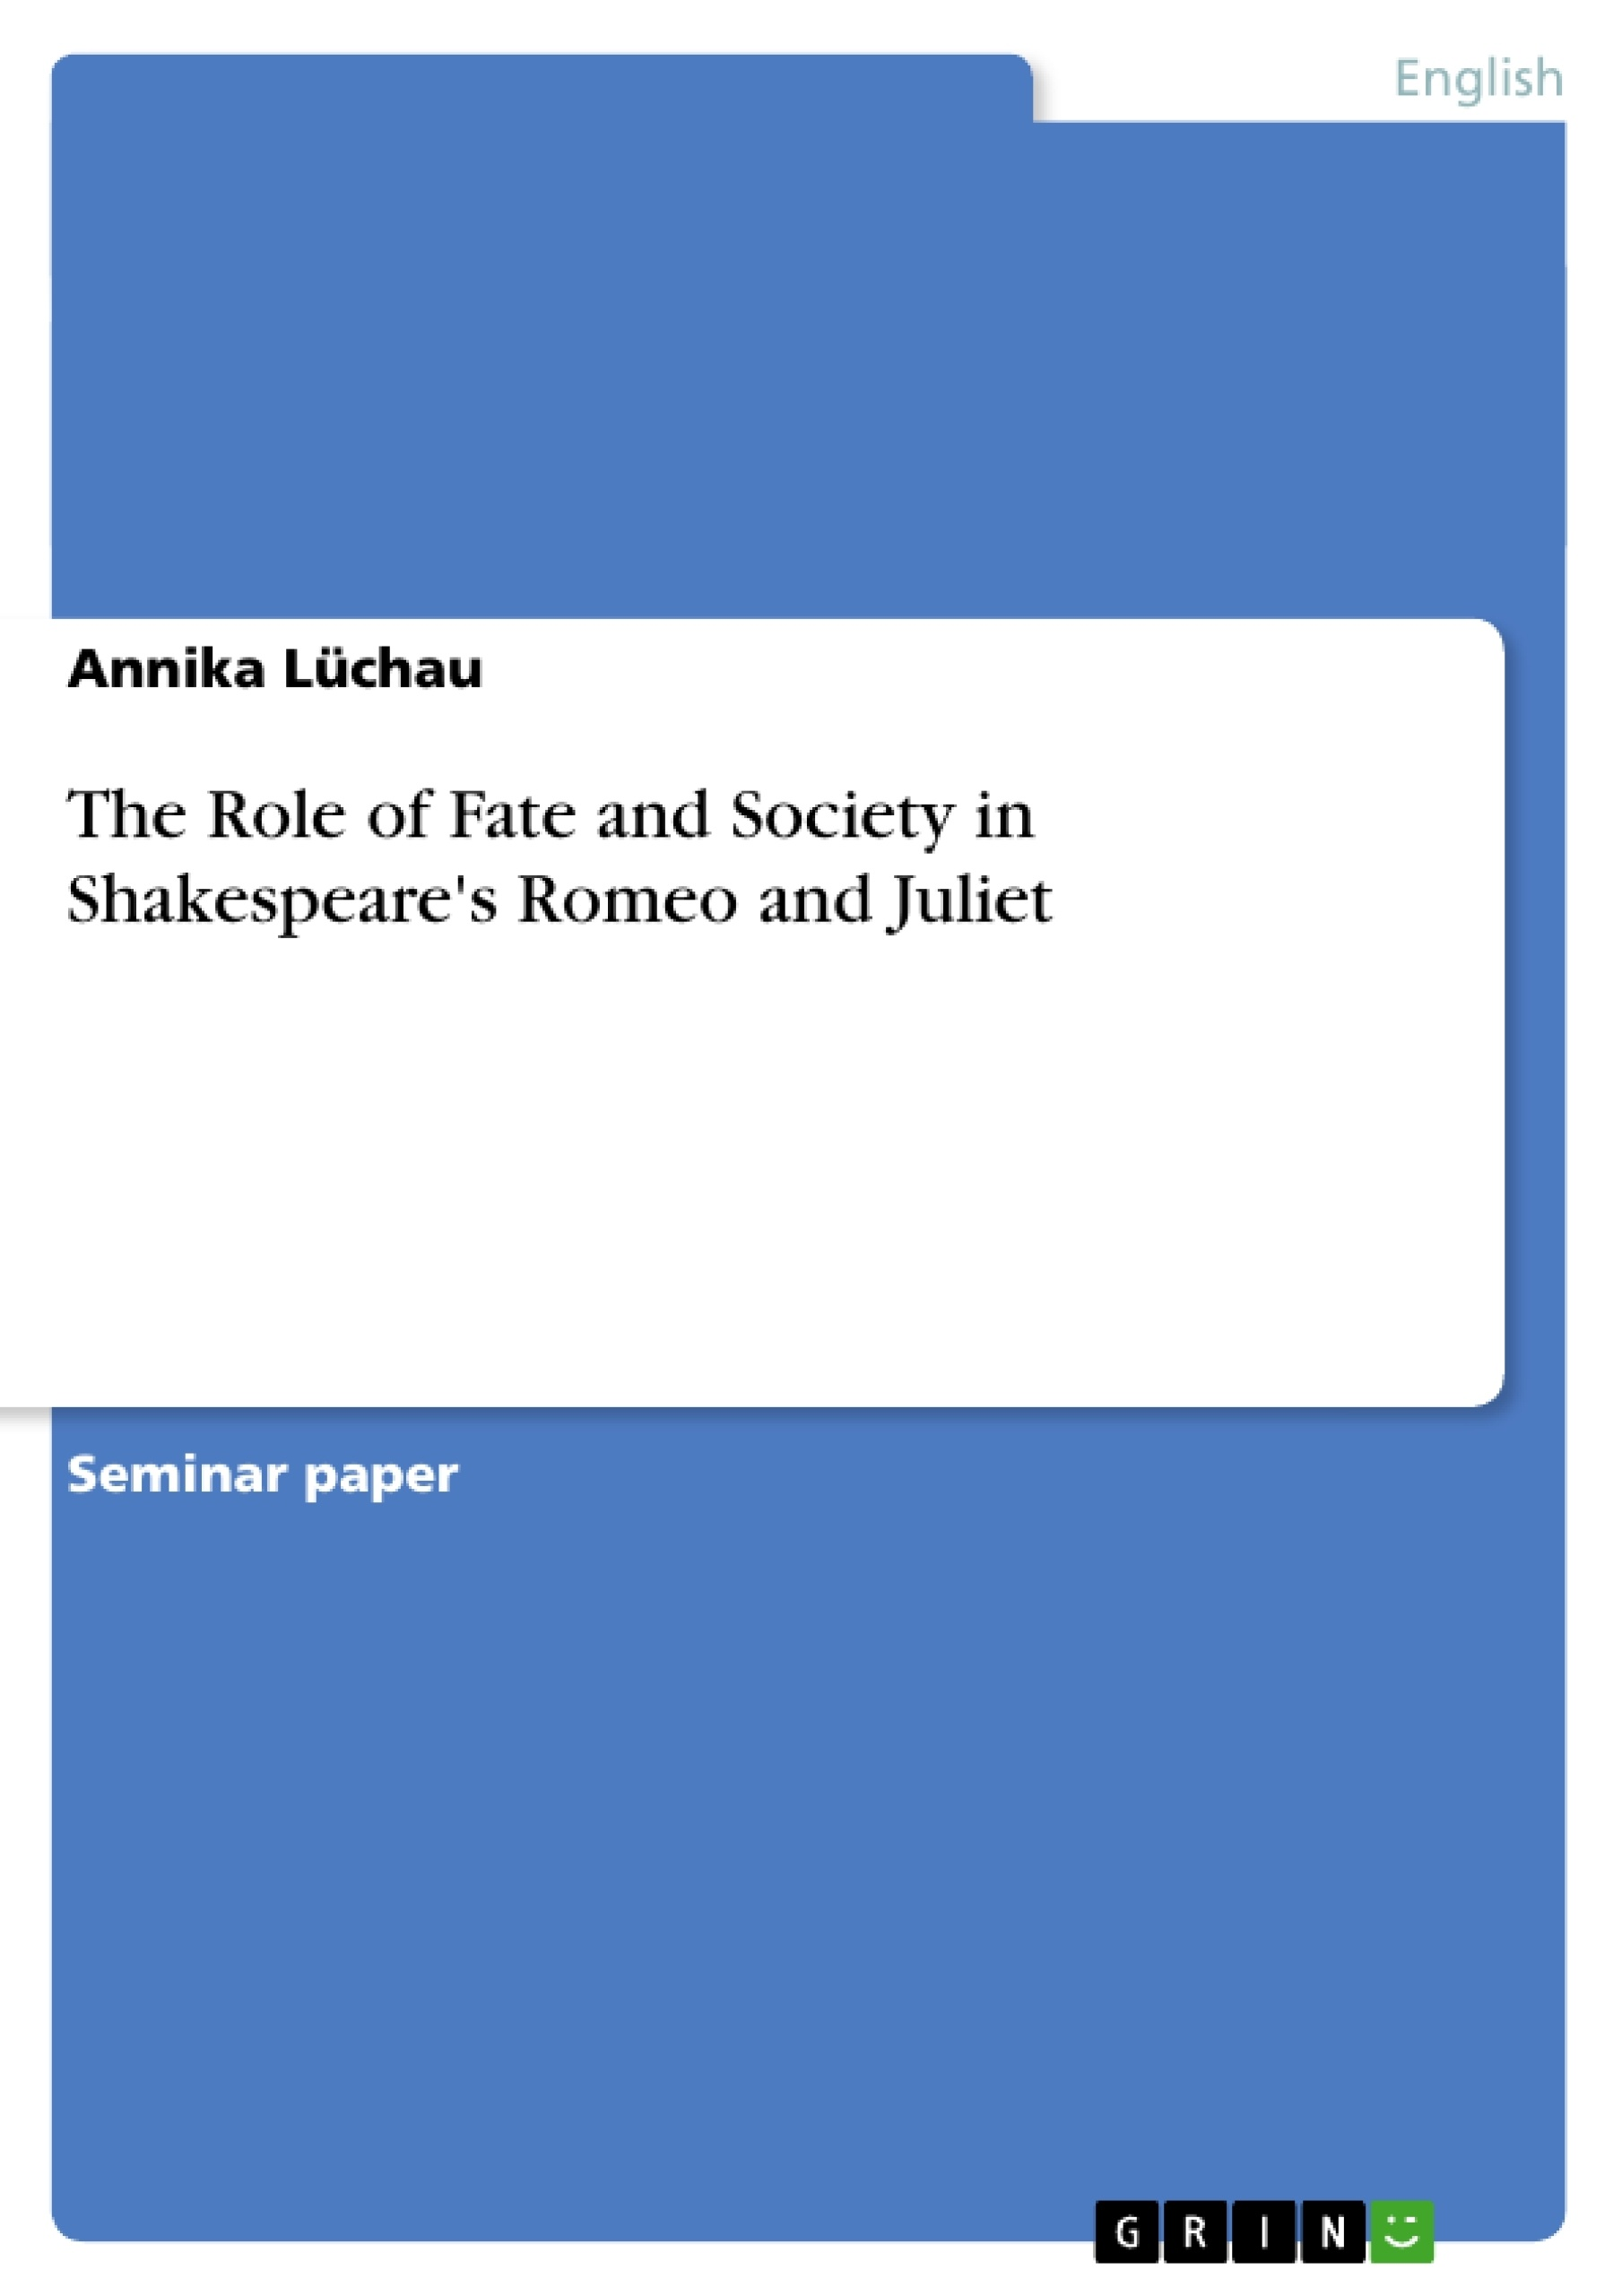 The Role Of Fate And Society In Shakespeare's Romeo And Juliet